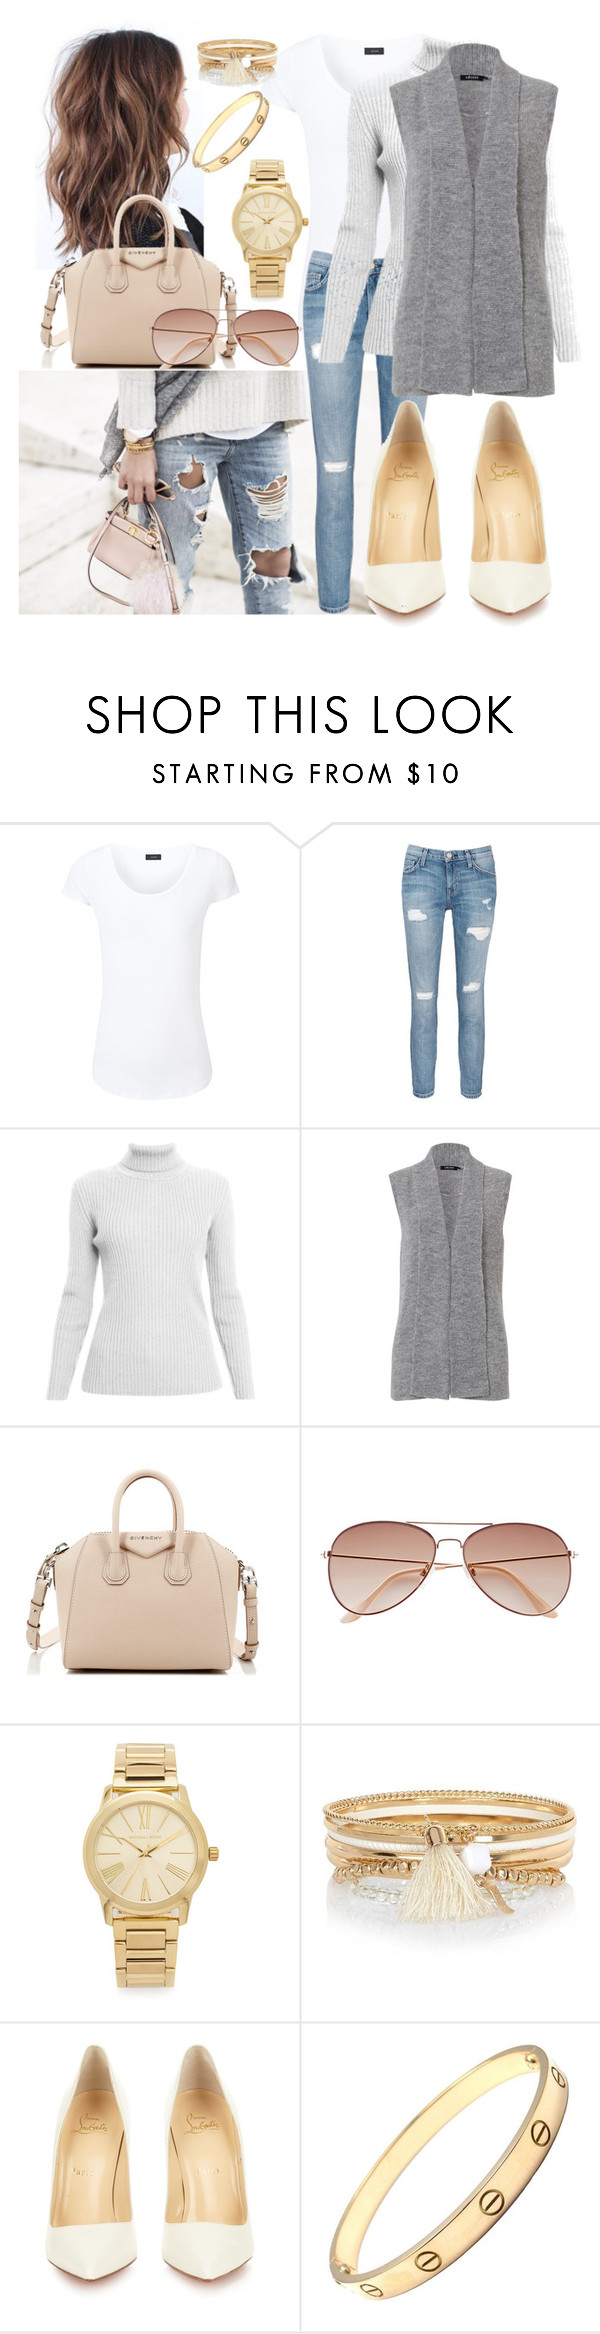 """""""Untitled #210"""" by nikkiemery ❤ liked on Polyvore featuring Joseph, Current/Elliott, Rumour London, Olsen, Givenchy, H&M, Michael Kors, River Island, Christian Louboutin and Cartier"""